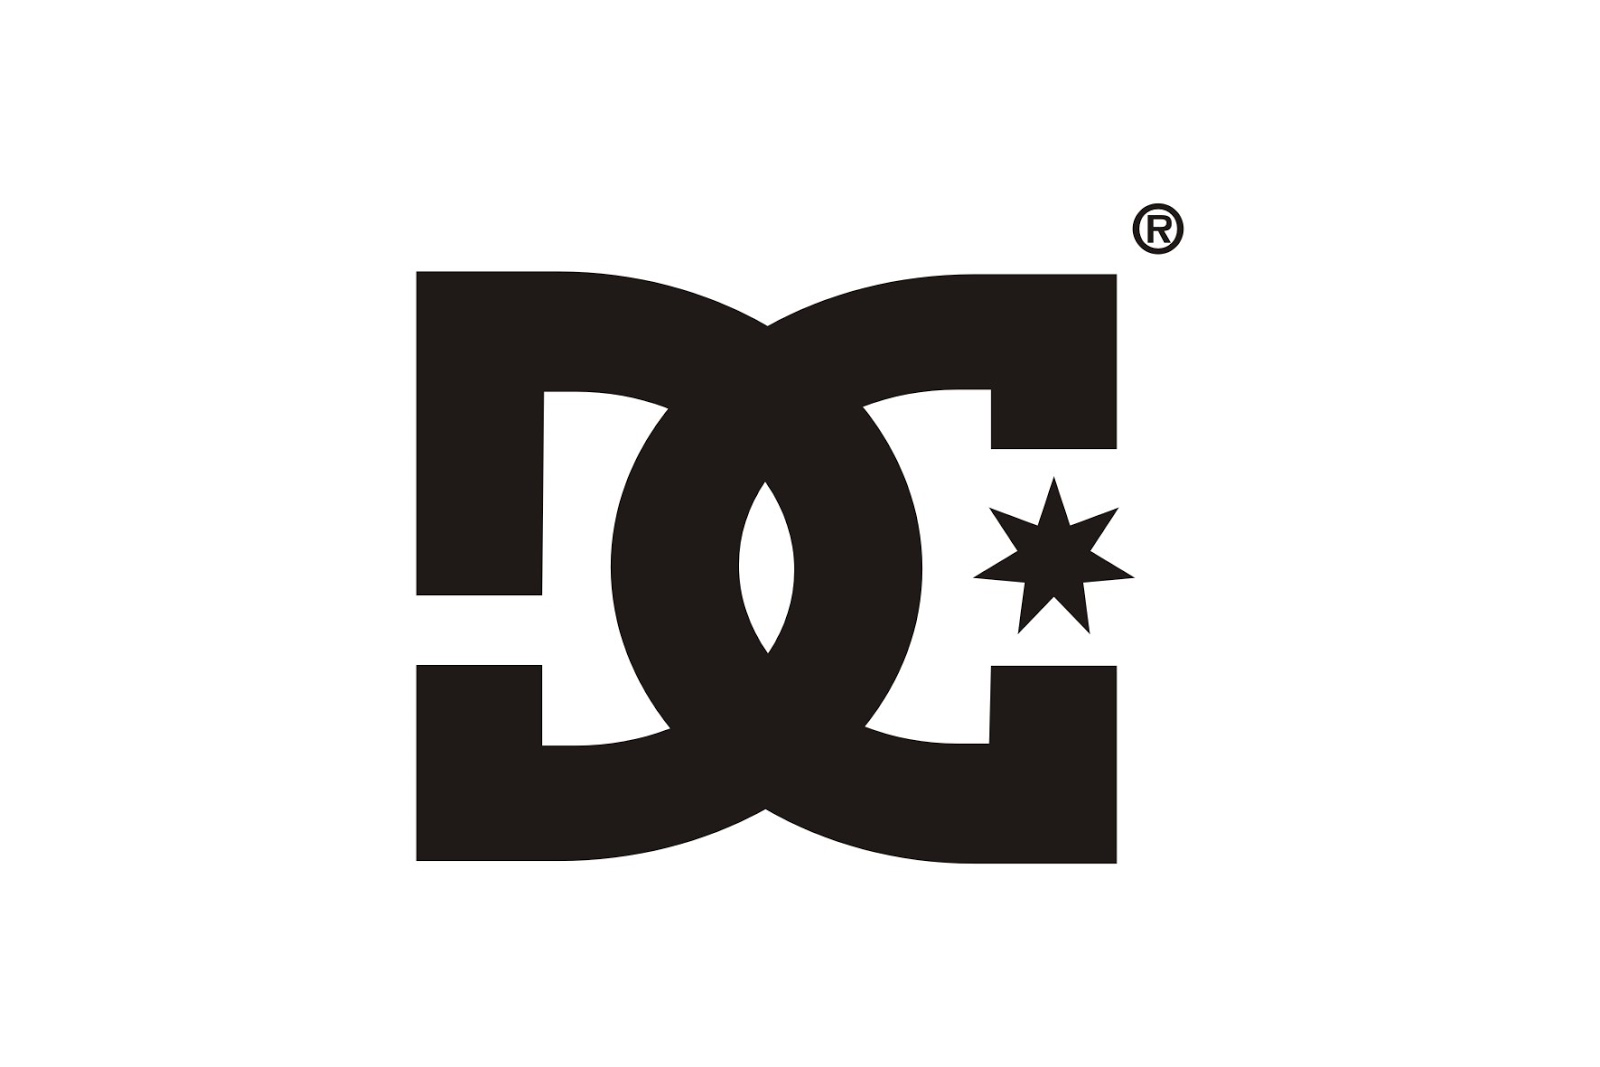 Logo Dc Shoes Png